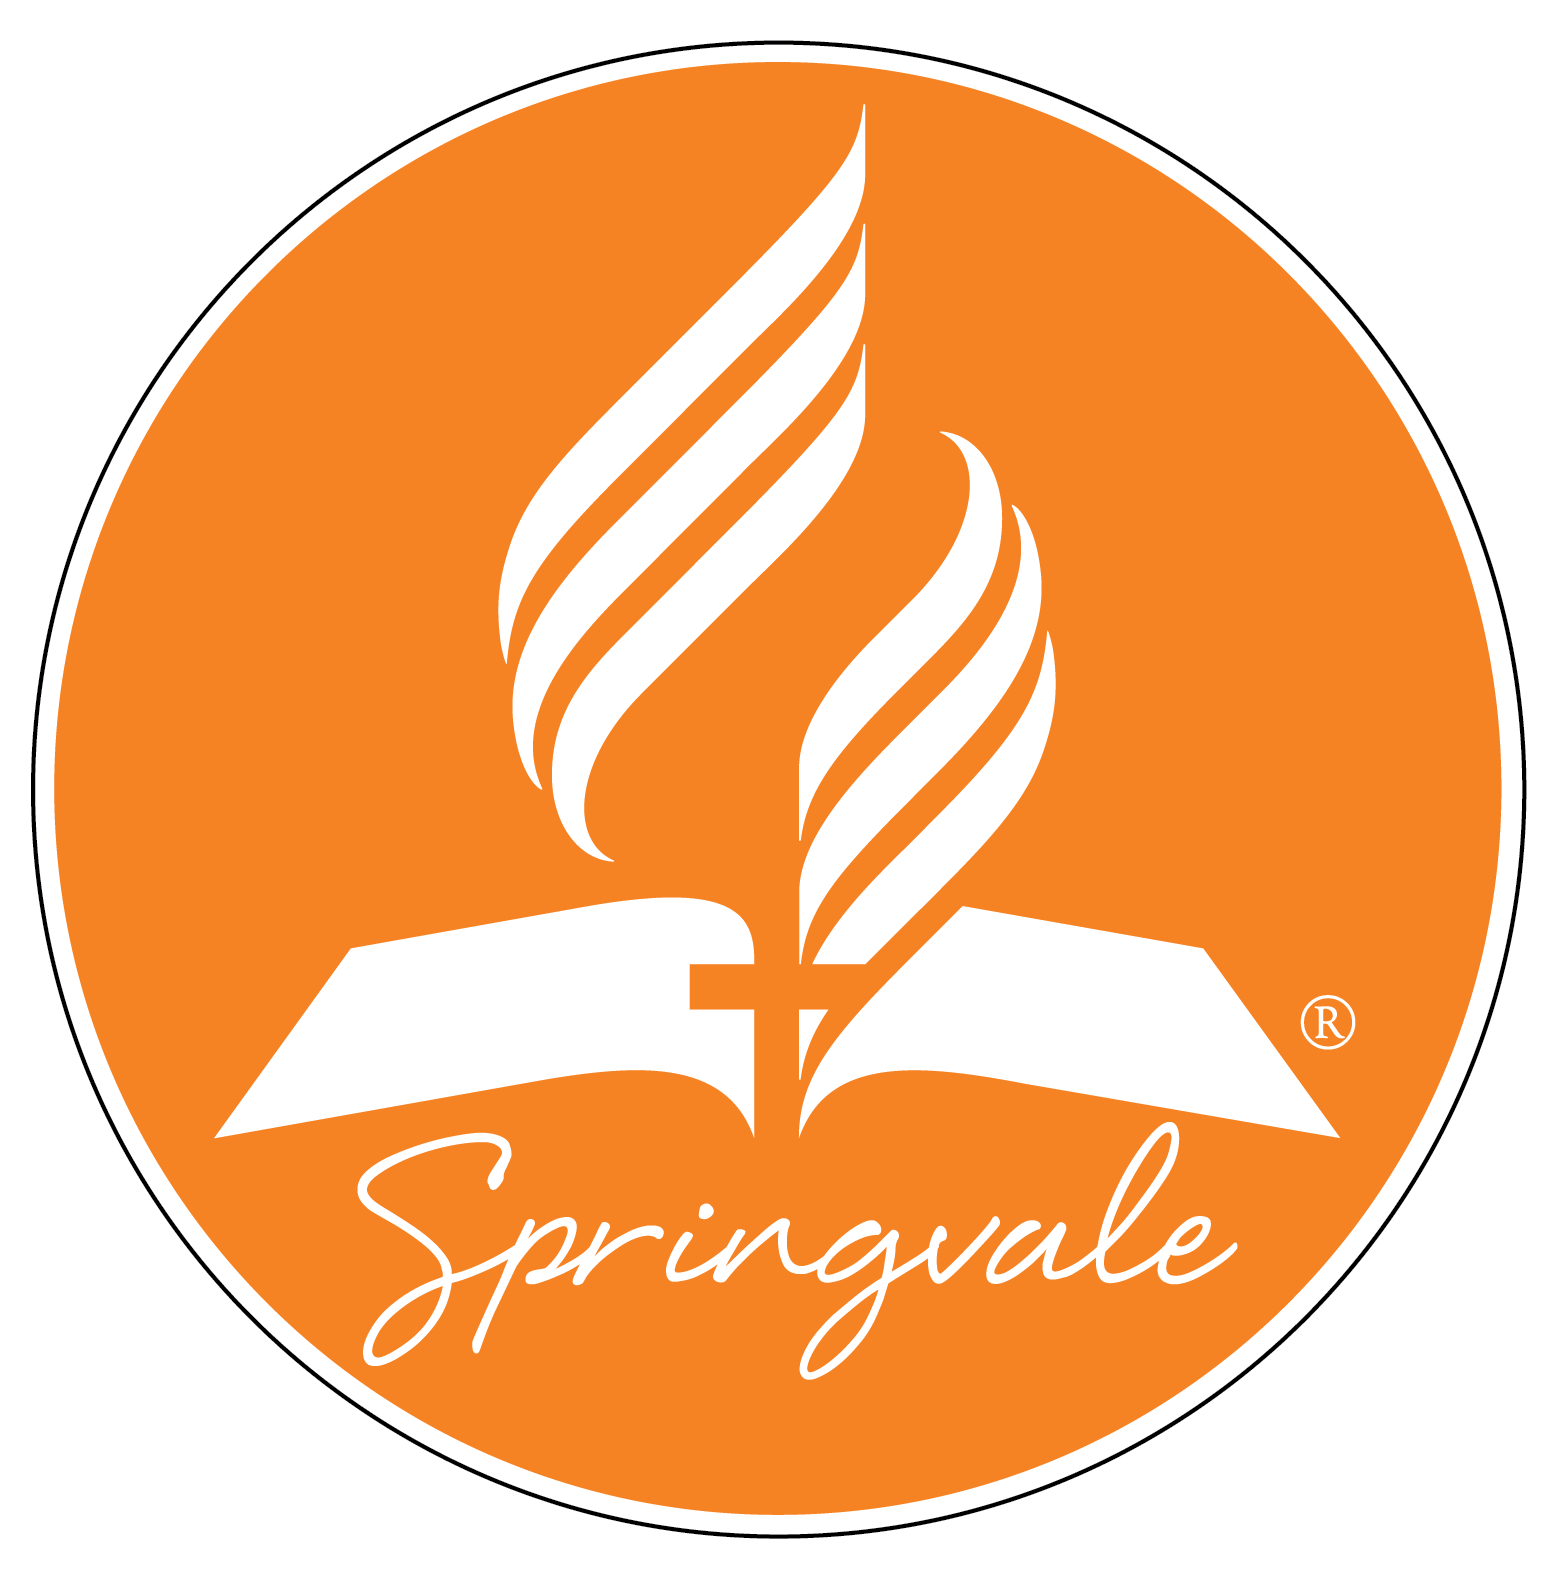 Sermons 2017 Audio – Springvale Seventh-day Adventist Church